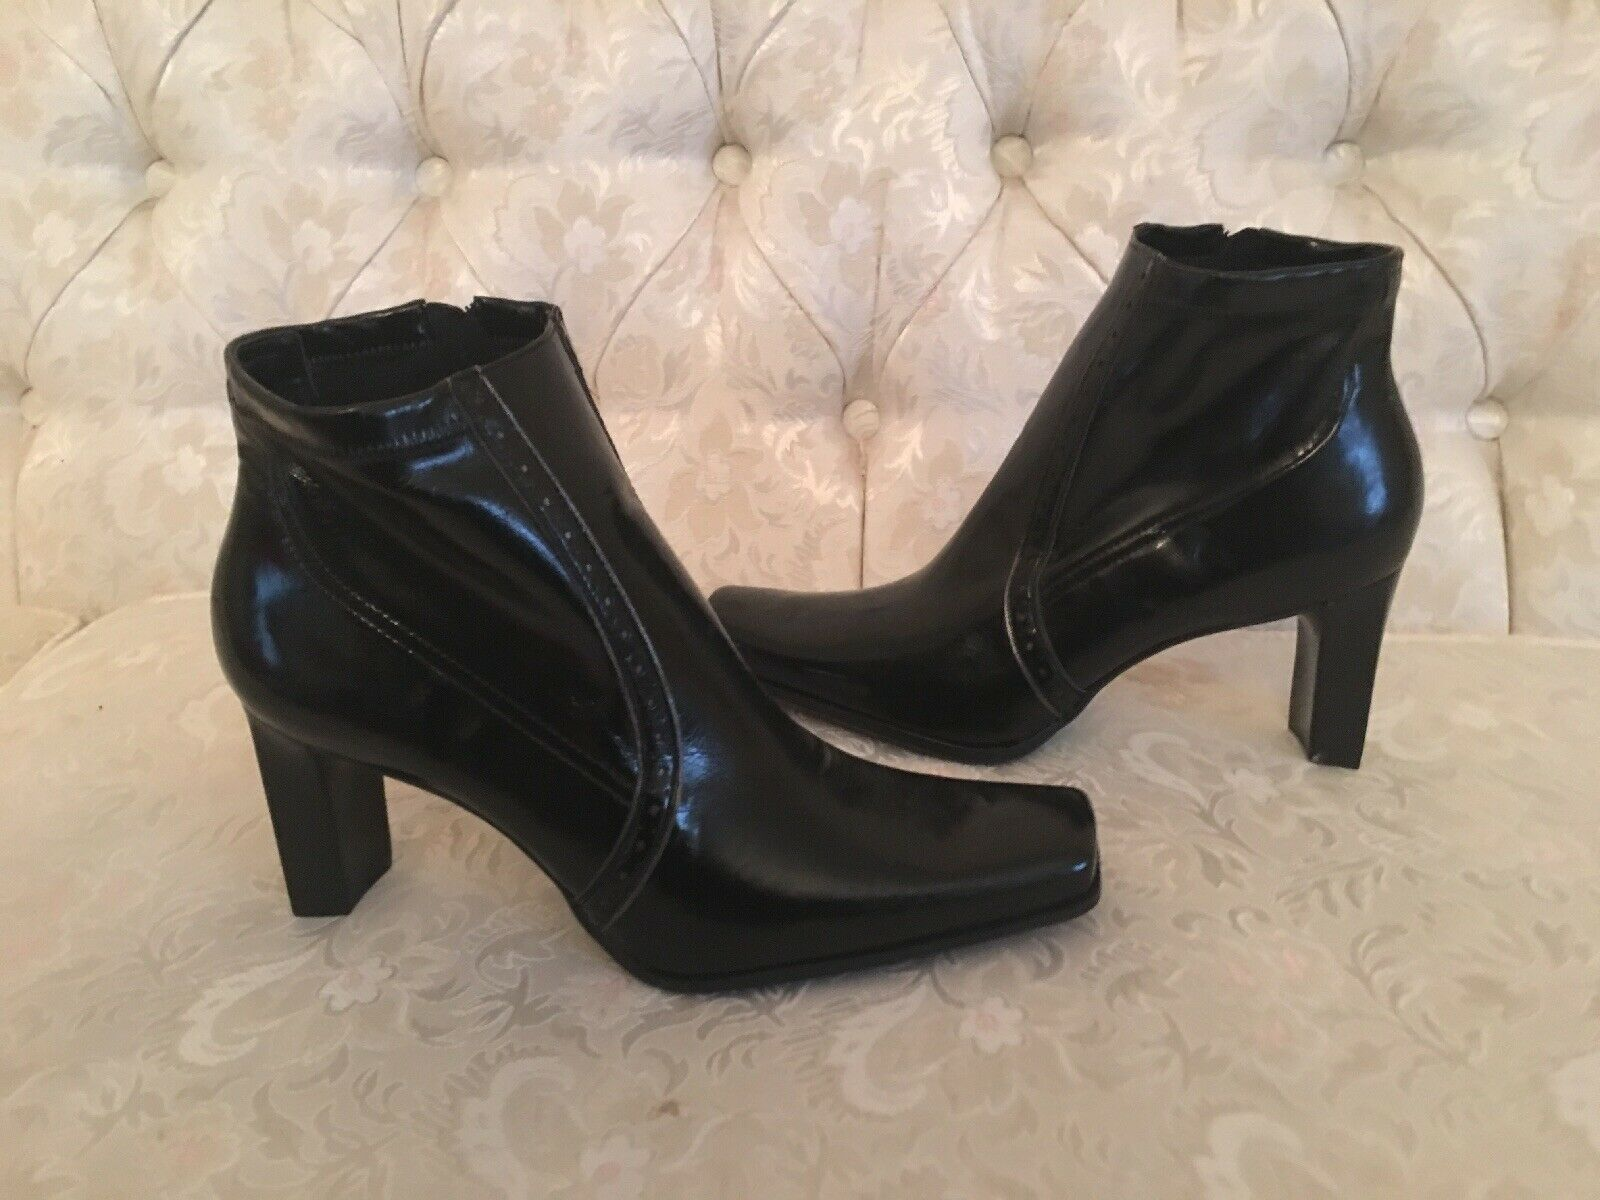 Franko Sarto Women's Black Leather Ankle High Heel Boots Side Zip Size 8